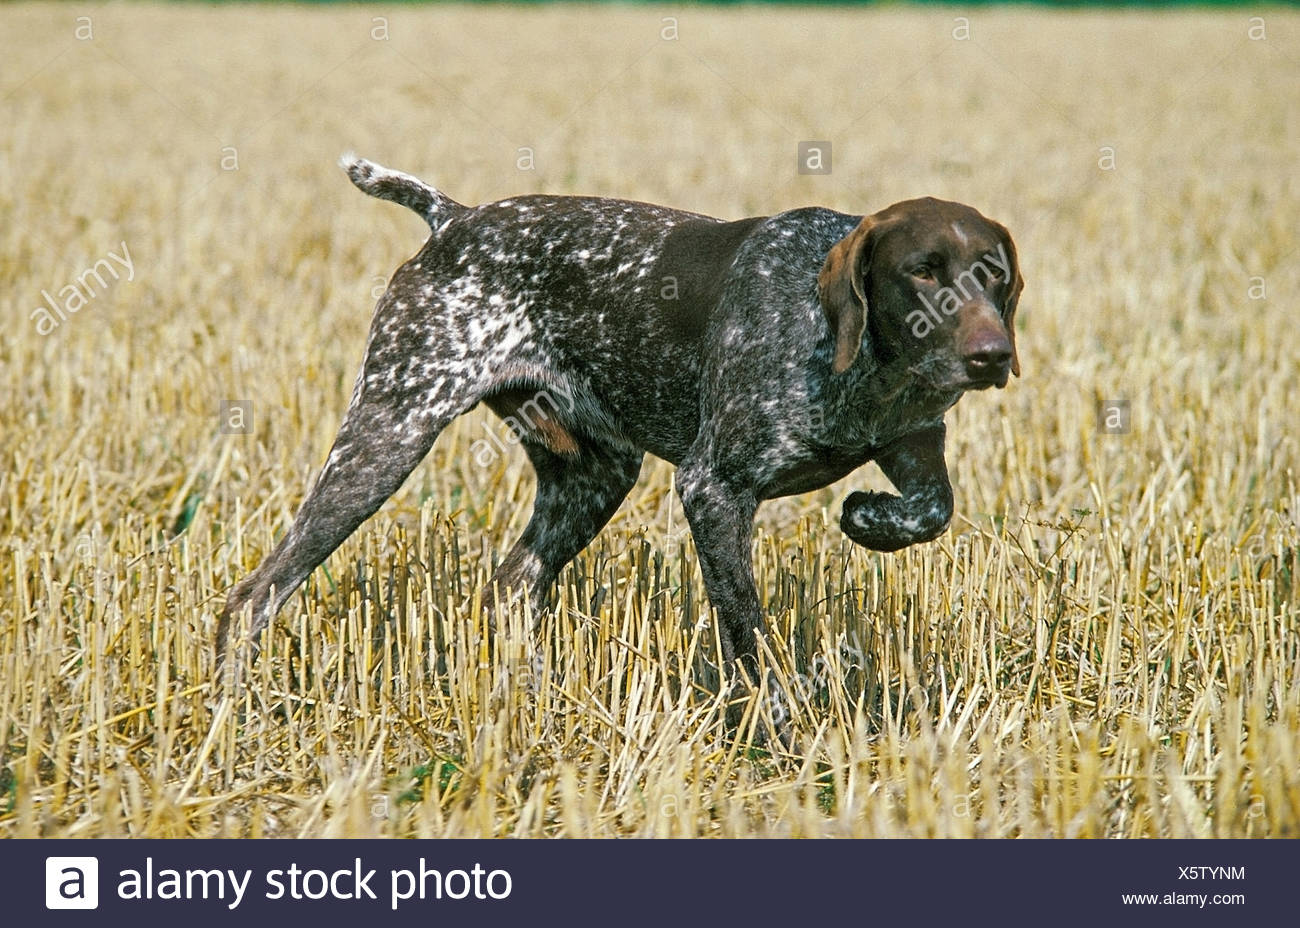 German Short-Haired Pointer Dog , Dog Pointing - Stock Image